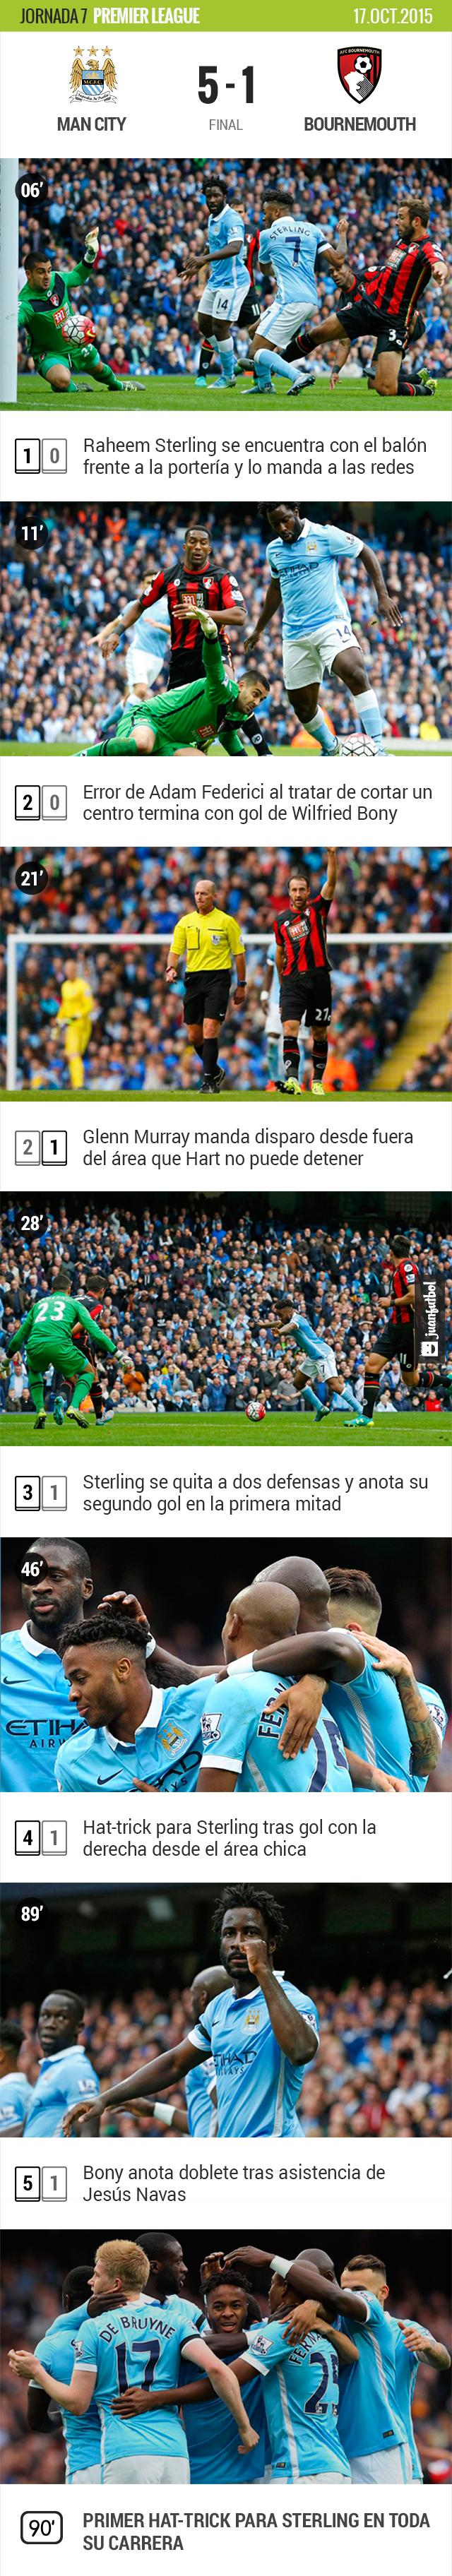 El City golea al Bournemouth con hat-trick de Sterling